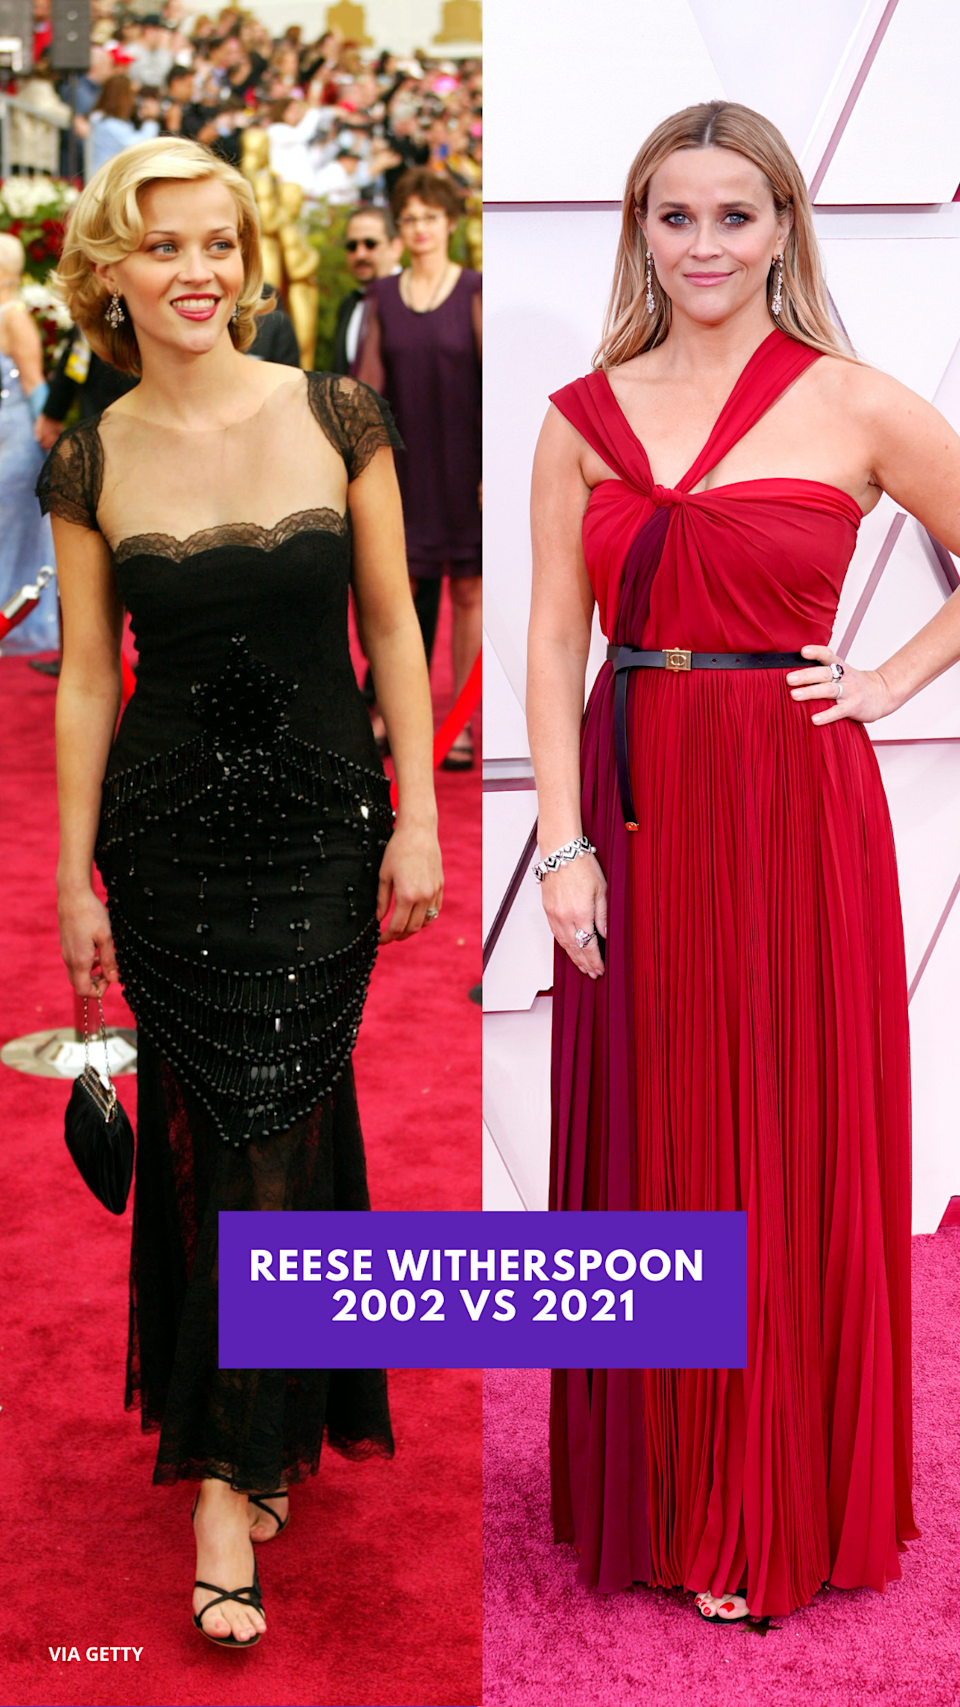 REESE WITHERSPOON (2002 vs 2021) 奧斯卡紅地毯今昔對比